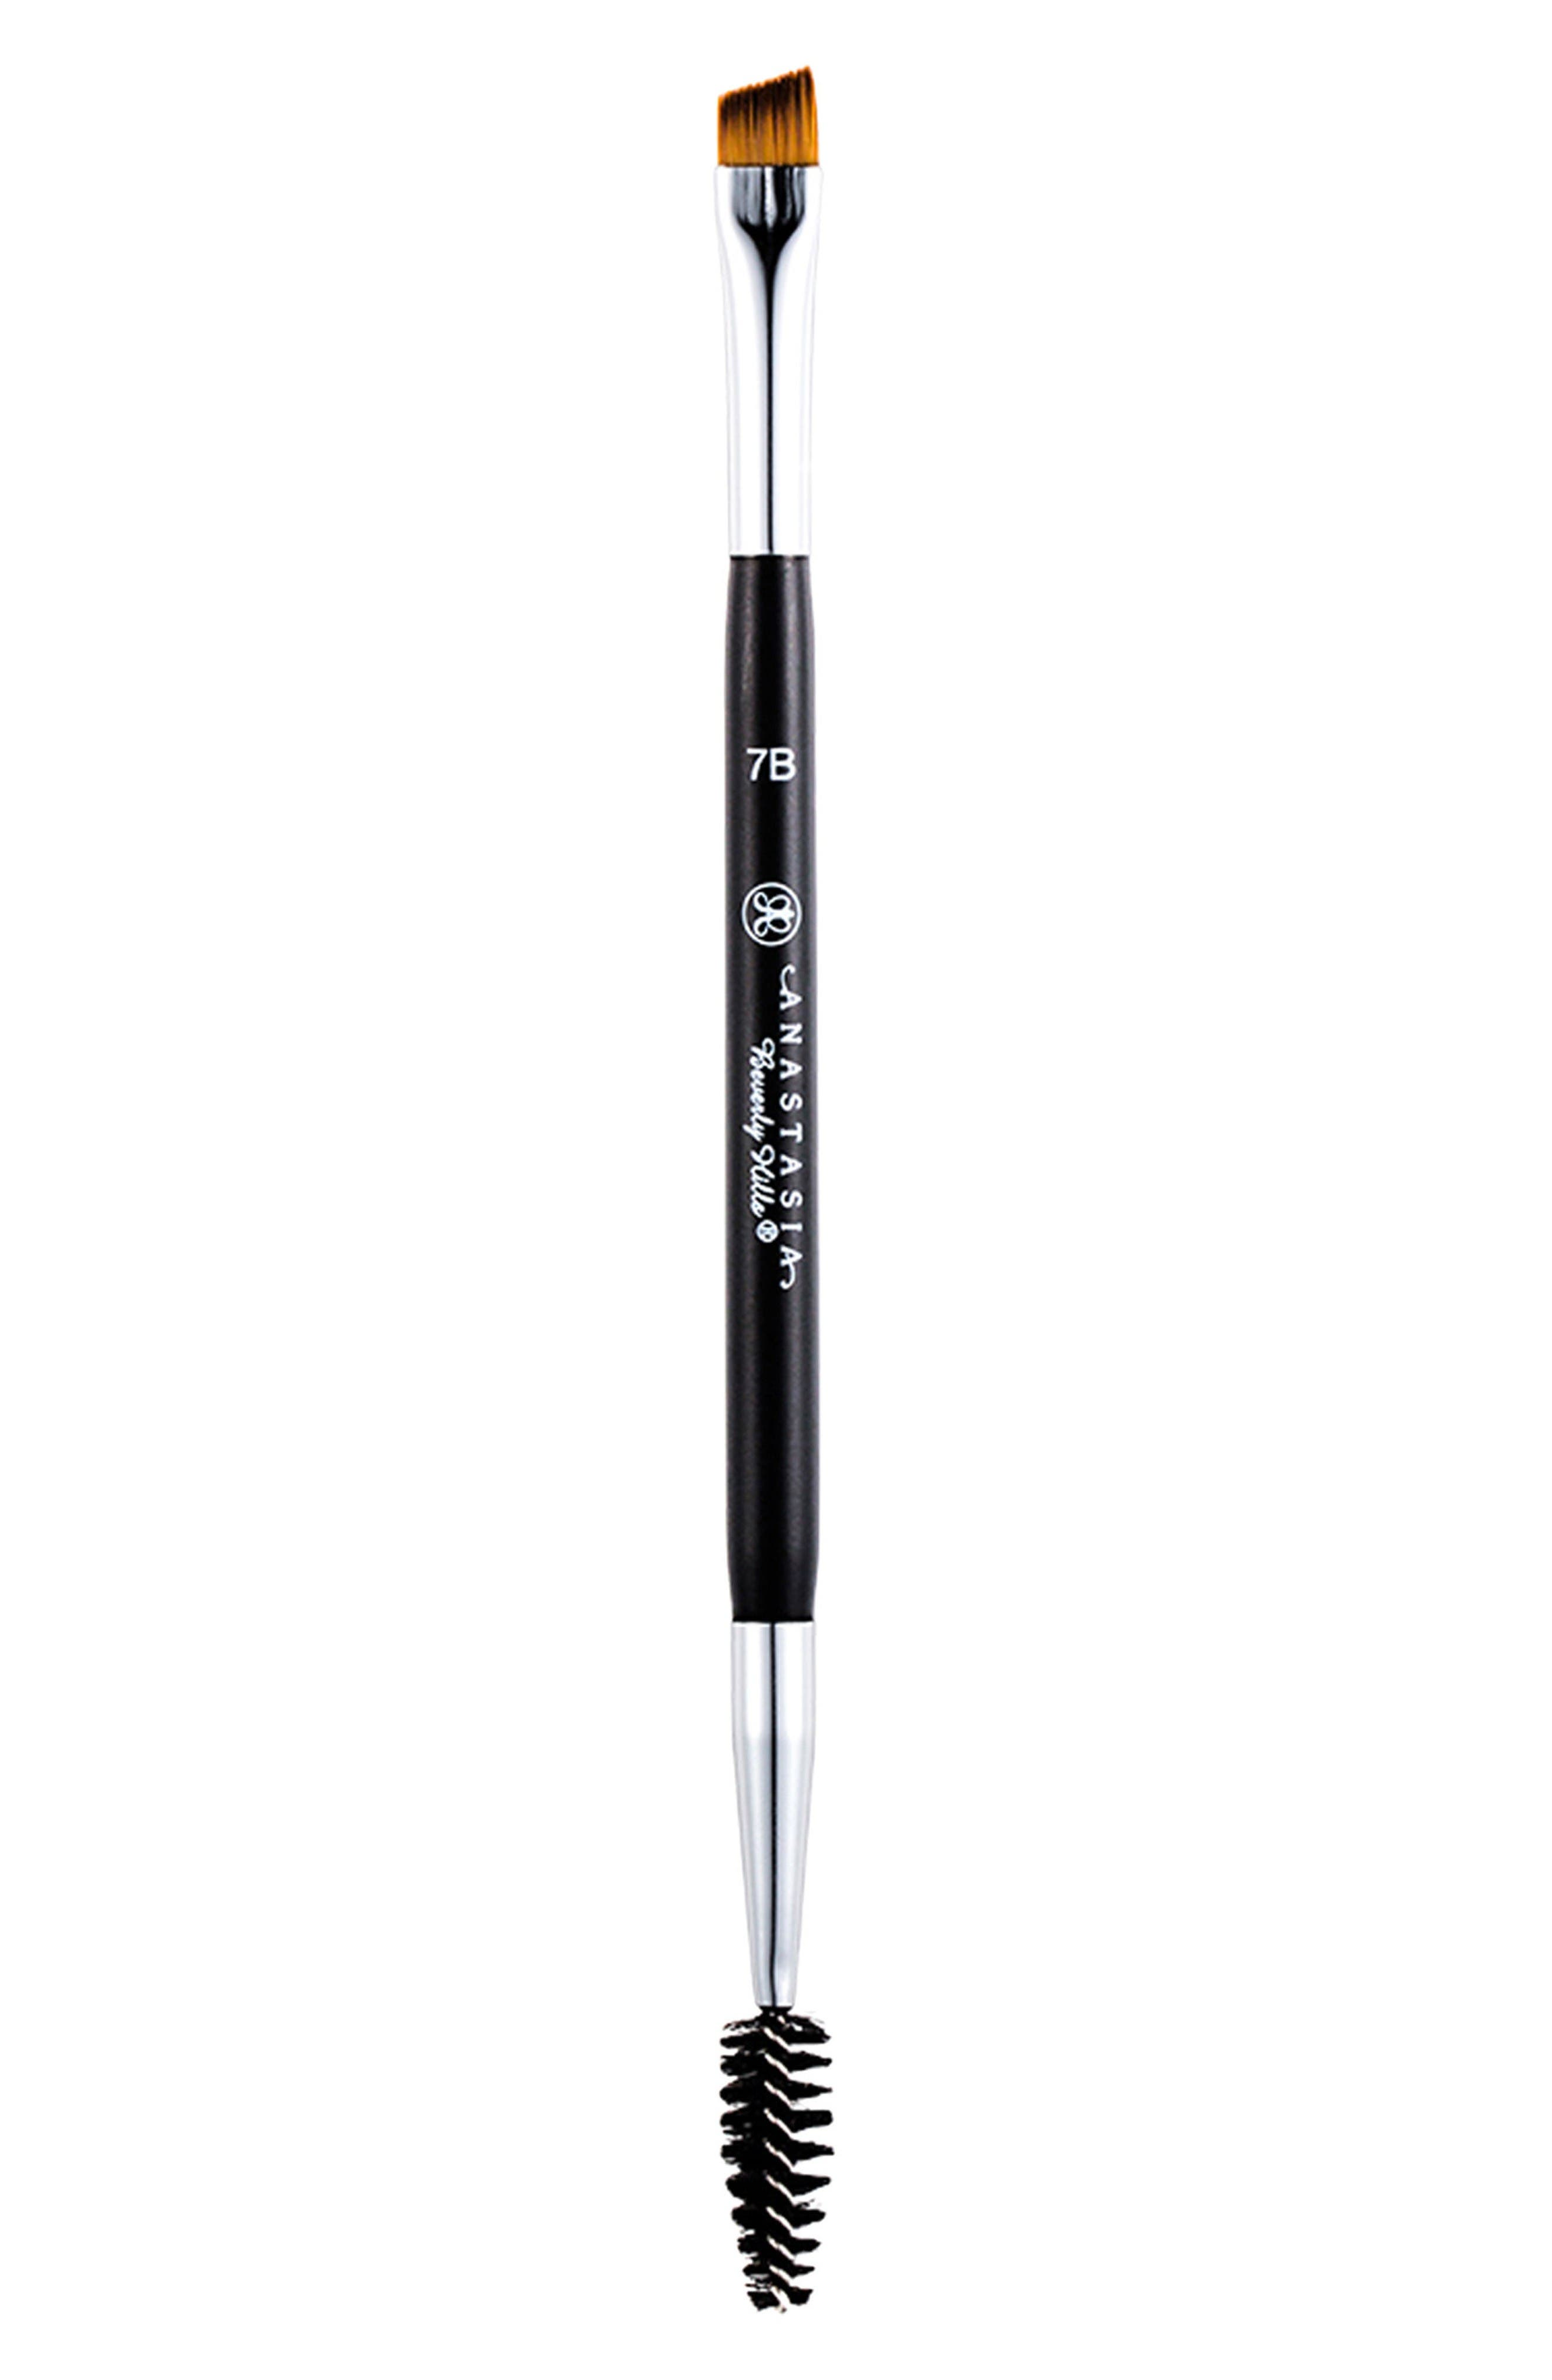 Anastasia Beverly Hills 7B Duo Brush